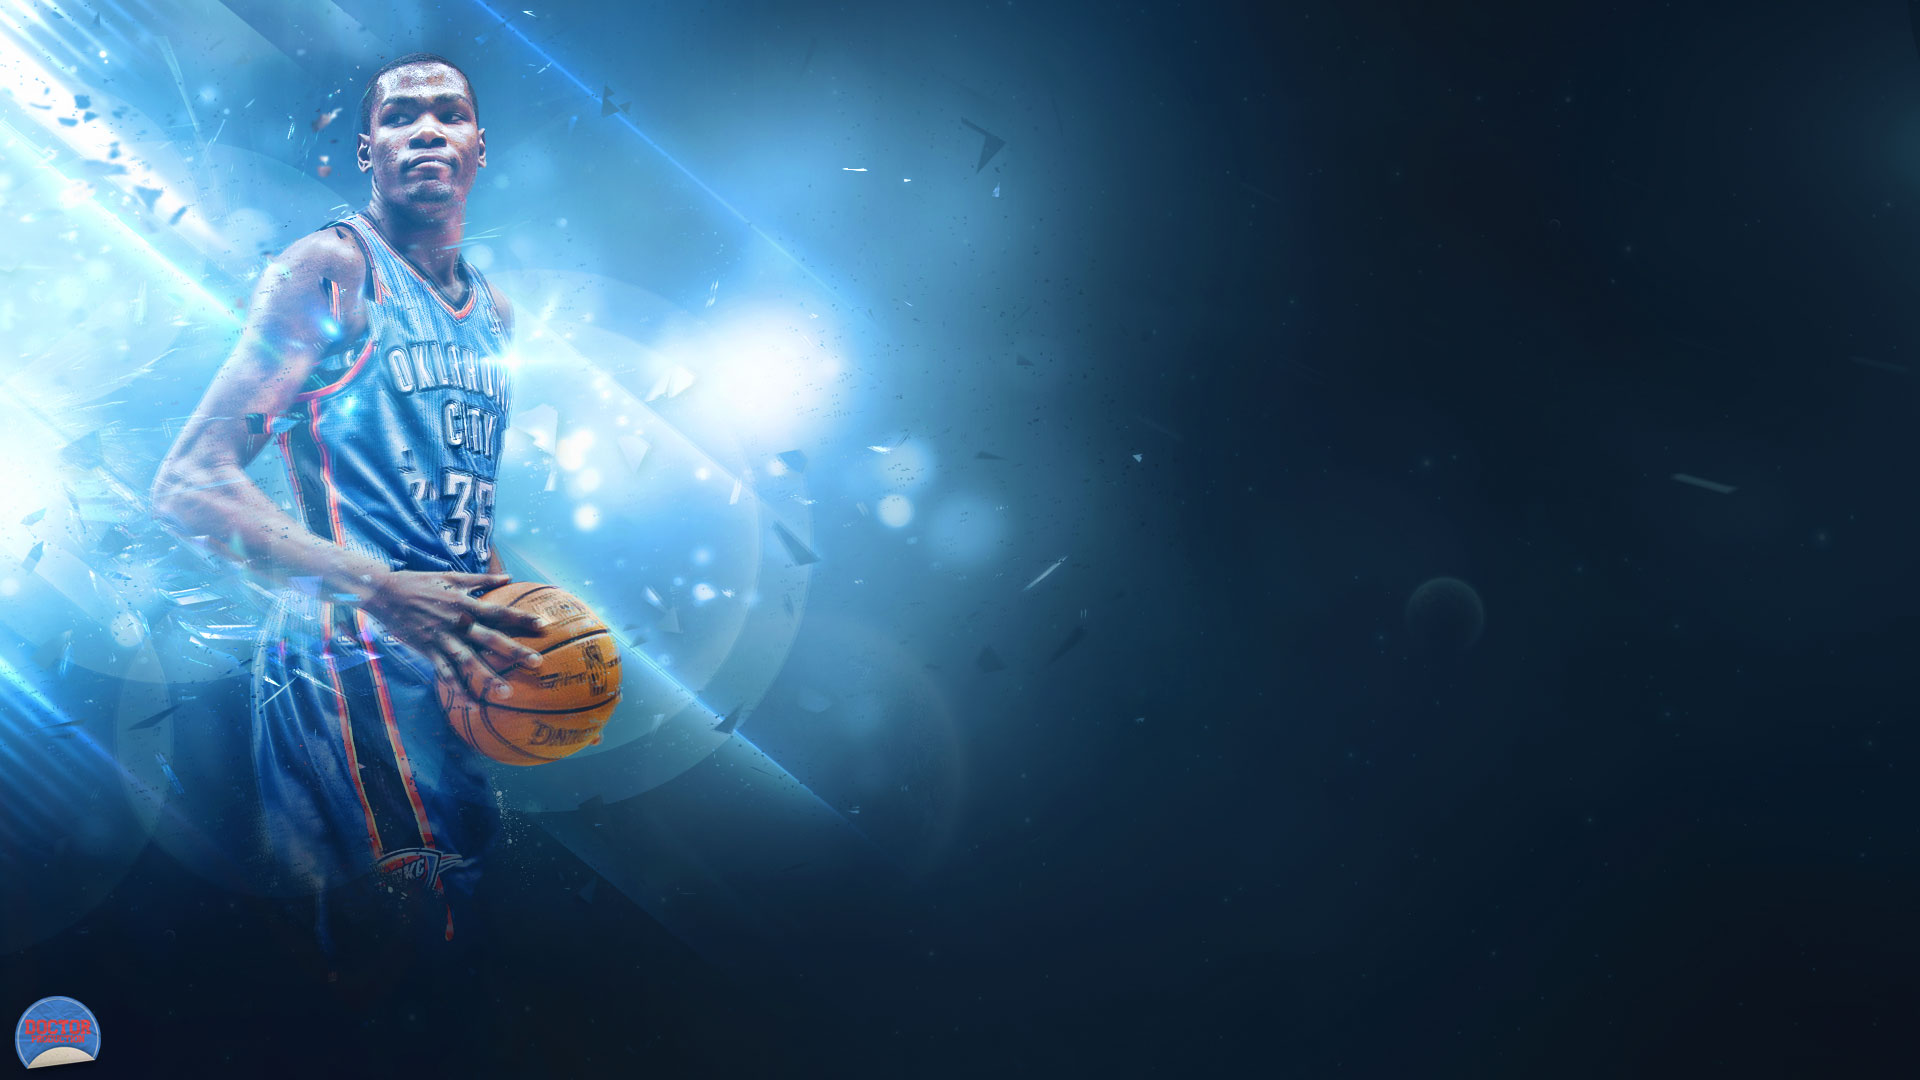 Wallpaper Of Kd Quotes QuotesGram 1920x1080